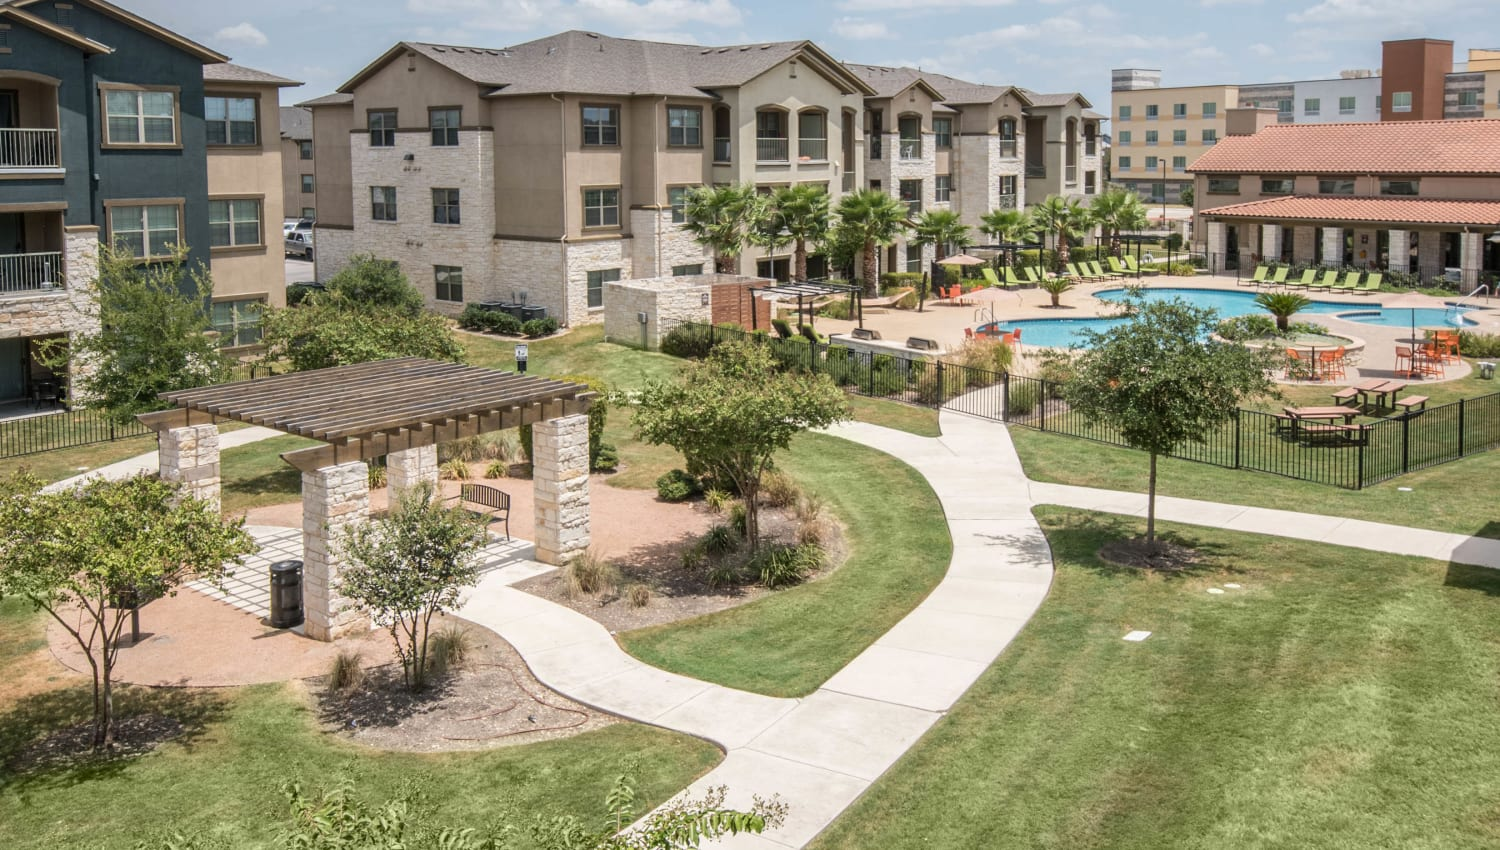 Walkways connecting the community at Carrington Oaks in Buda, Texas